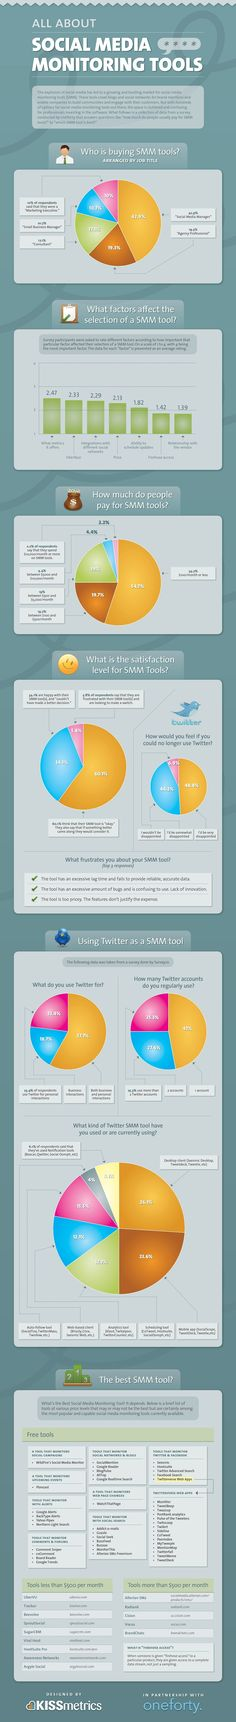 Social-Media-Monitoring-Tools-Facts-and-How-to-Use #Infographic www.xemesolutions.com